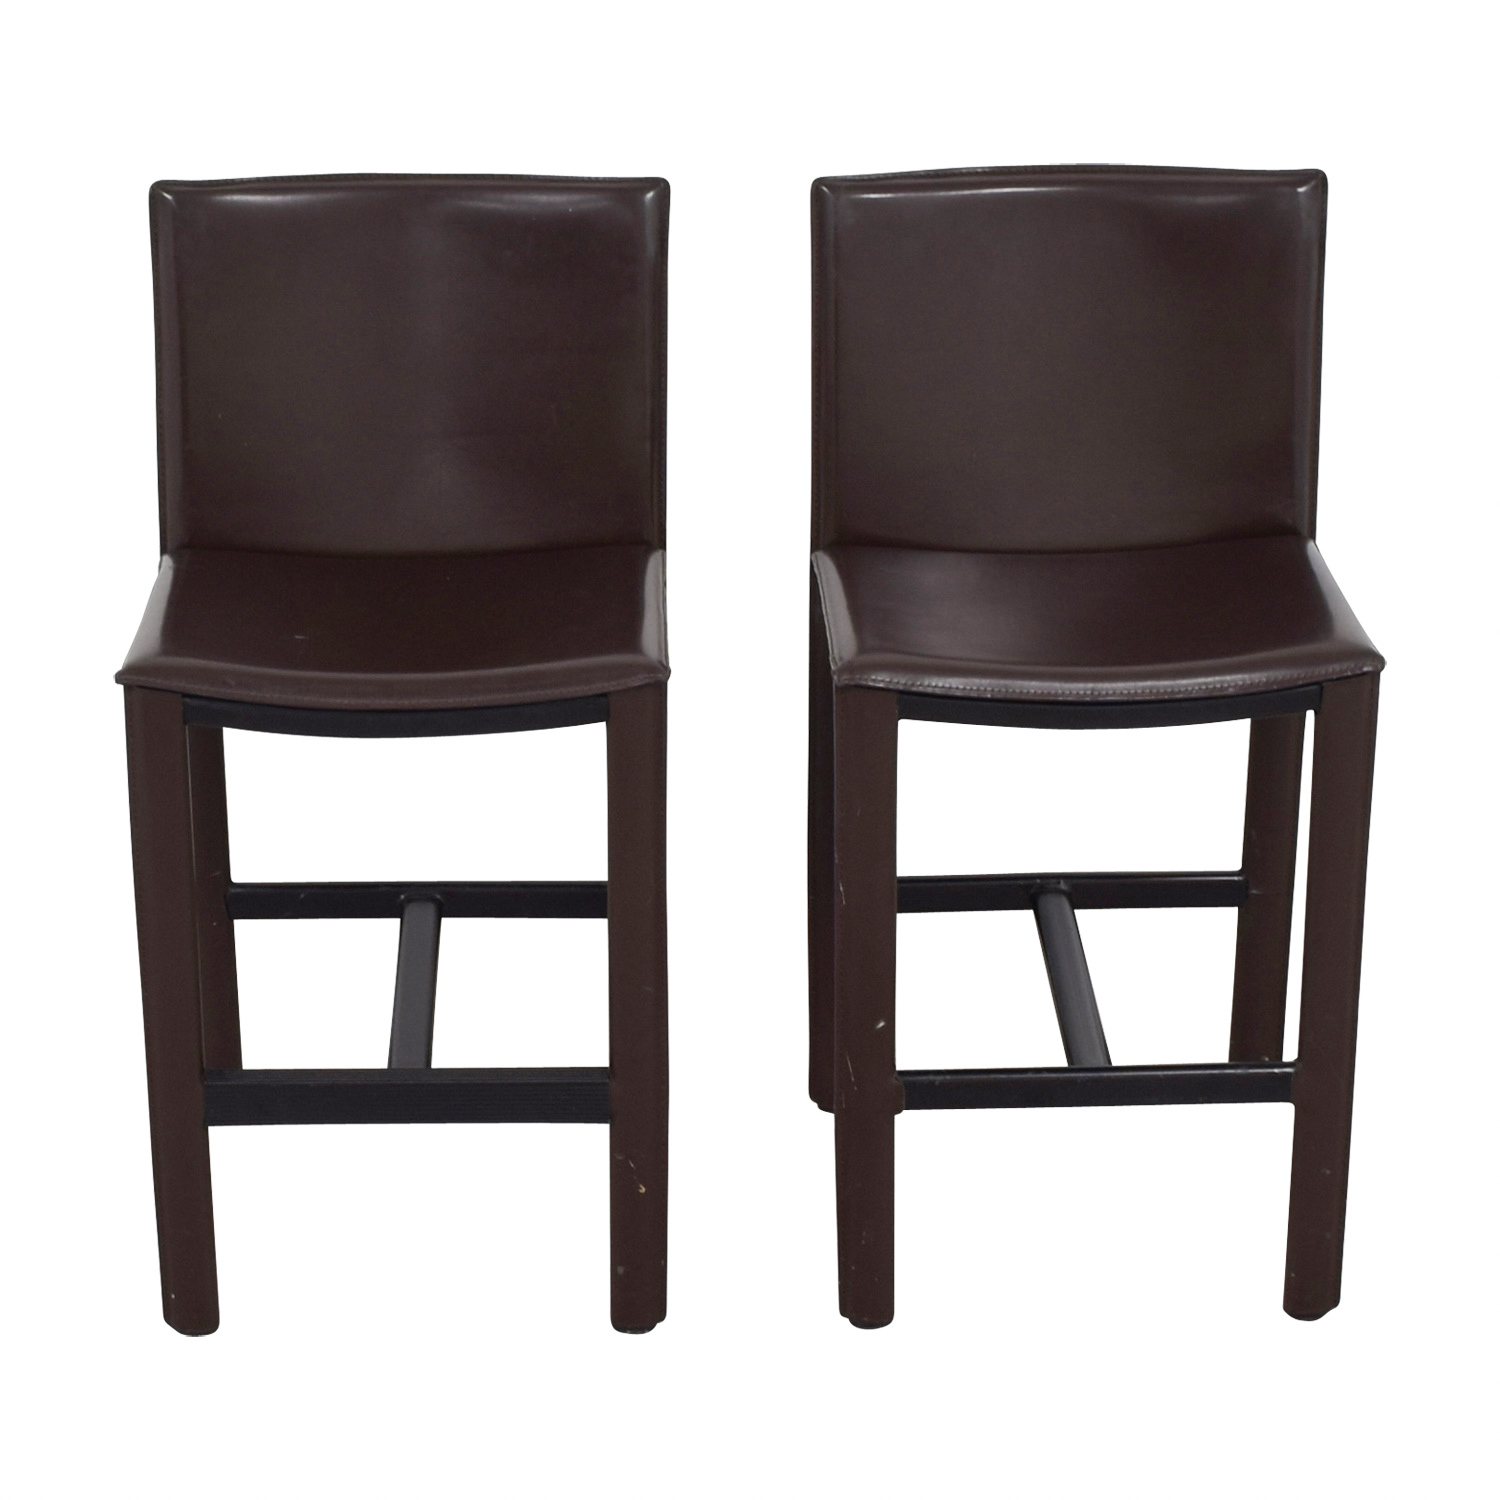 73 off room board room board brown leather bar stools chairs. Black Bedroom Furniture Sets. Home Design Ideas